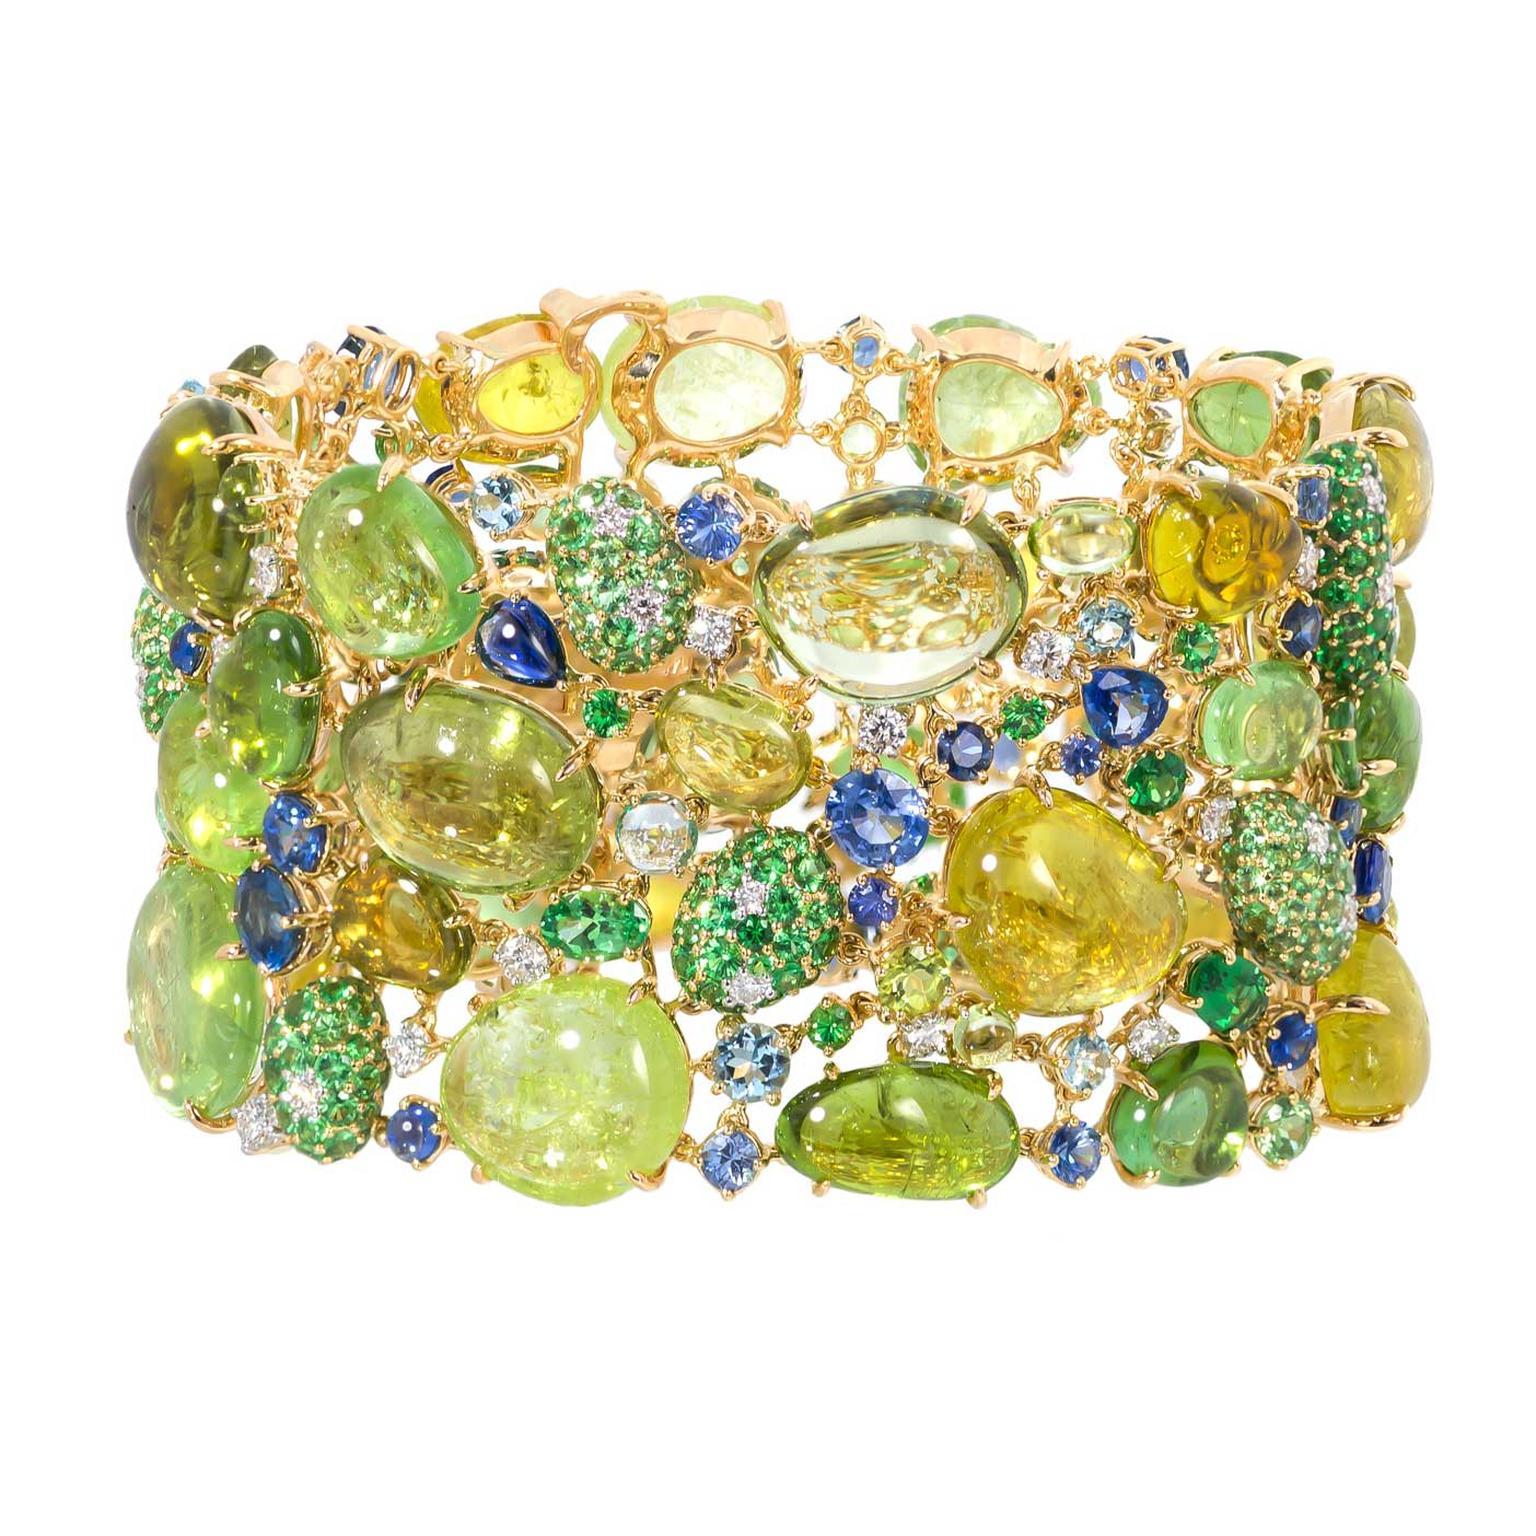 Margot McKinney Paraiba tourmaline and opal bracelet